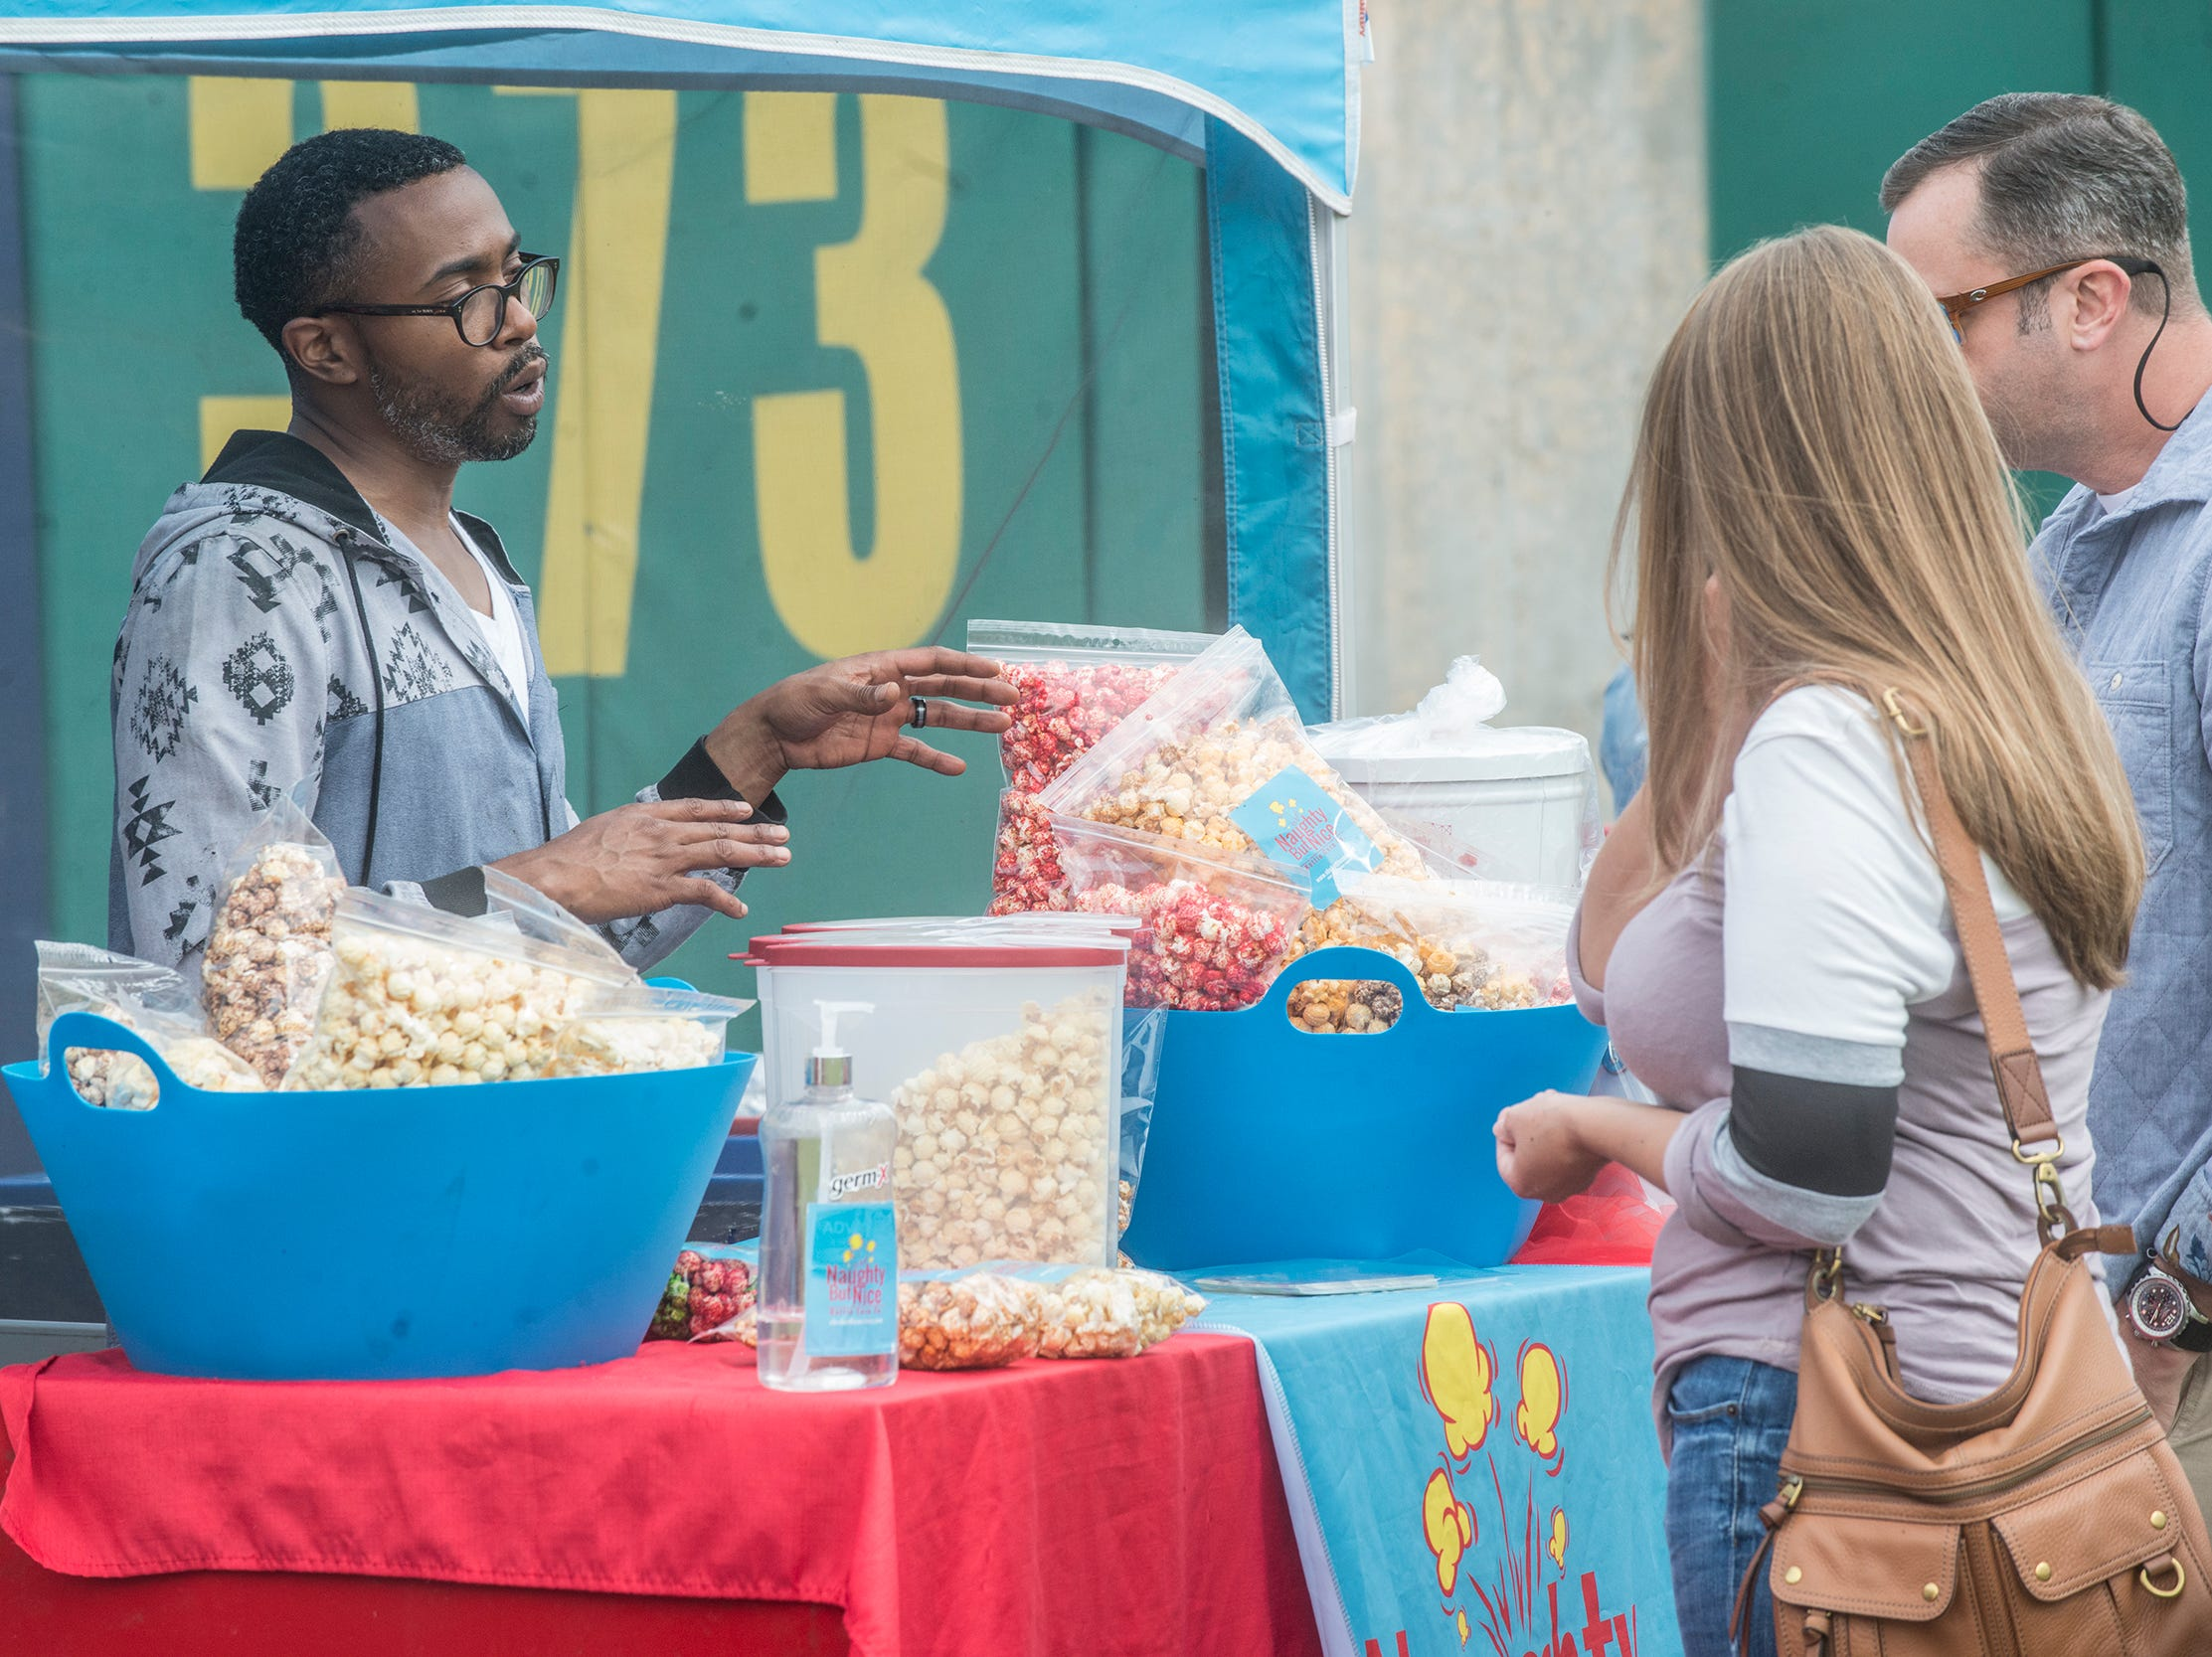 Naughty But Nice Kettle Corn: Food Truck Mash-Up returned to Riverwalk Stadium on Saturday, Oct. 20, 2018, bringing a variety of food trucks, music and games for guests to enjoy.